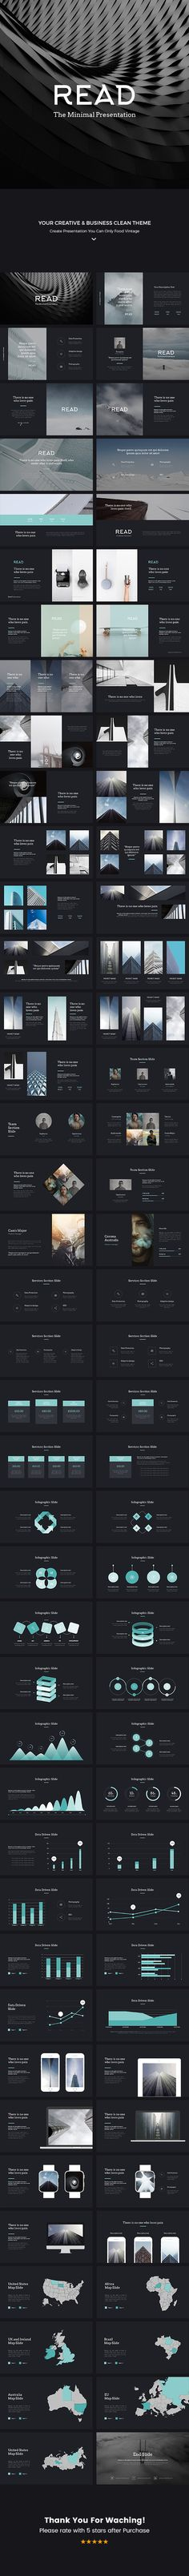 READ Minimal  Powerpoint Template